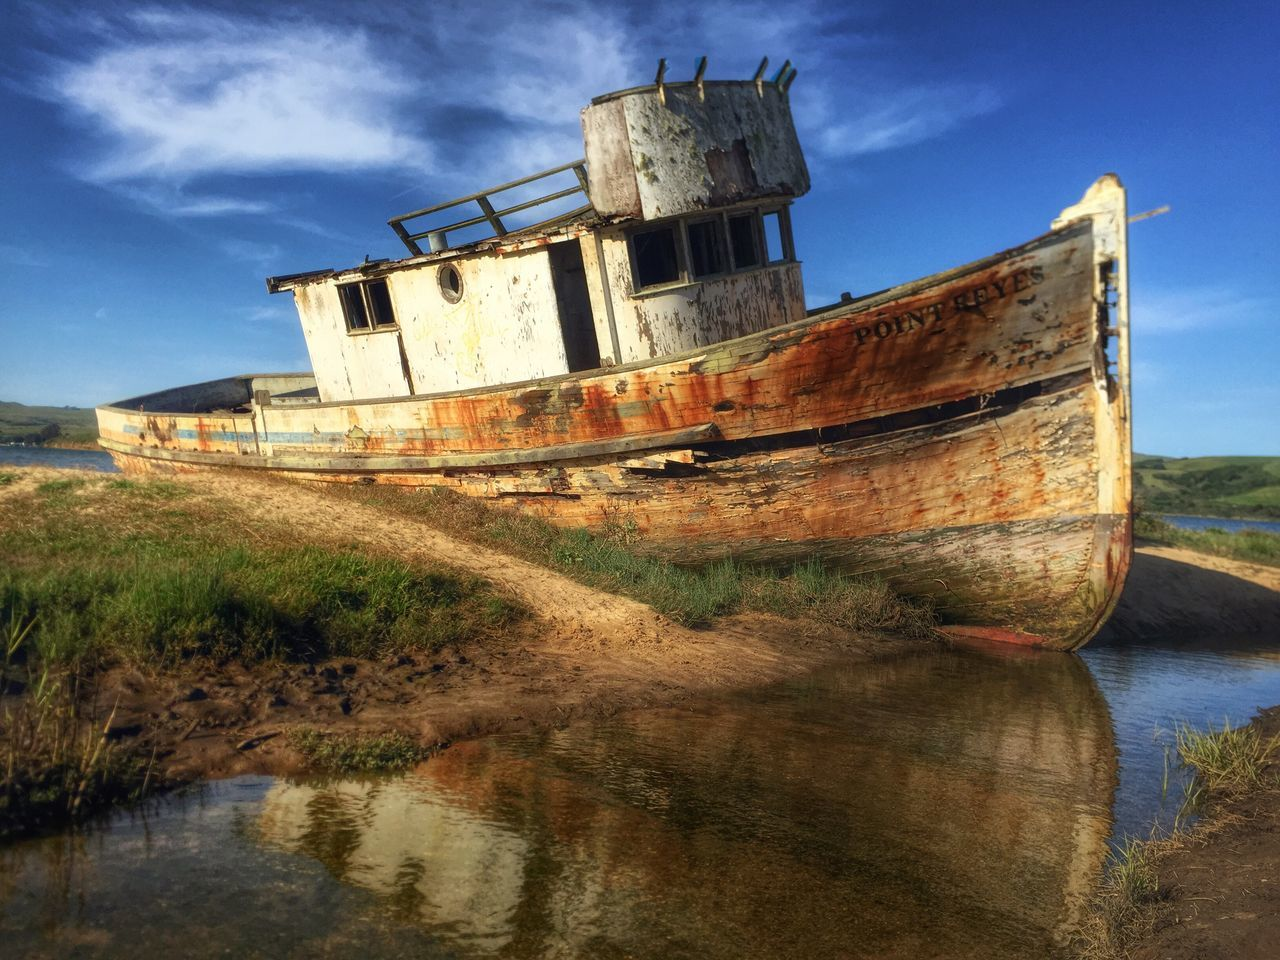 Abandoned Boat On Riverbank Against Blue Sky